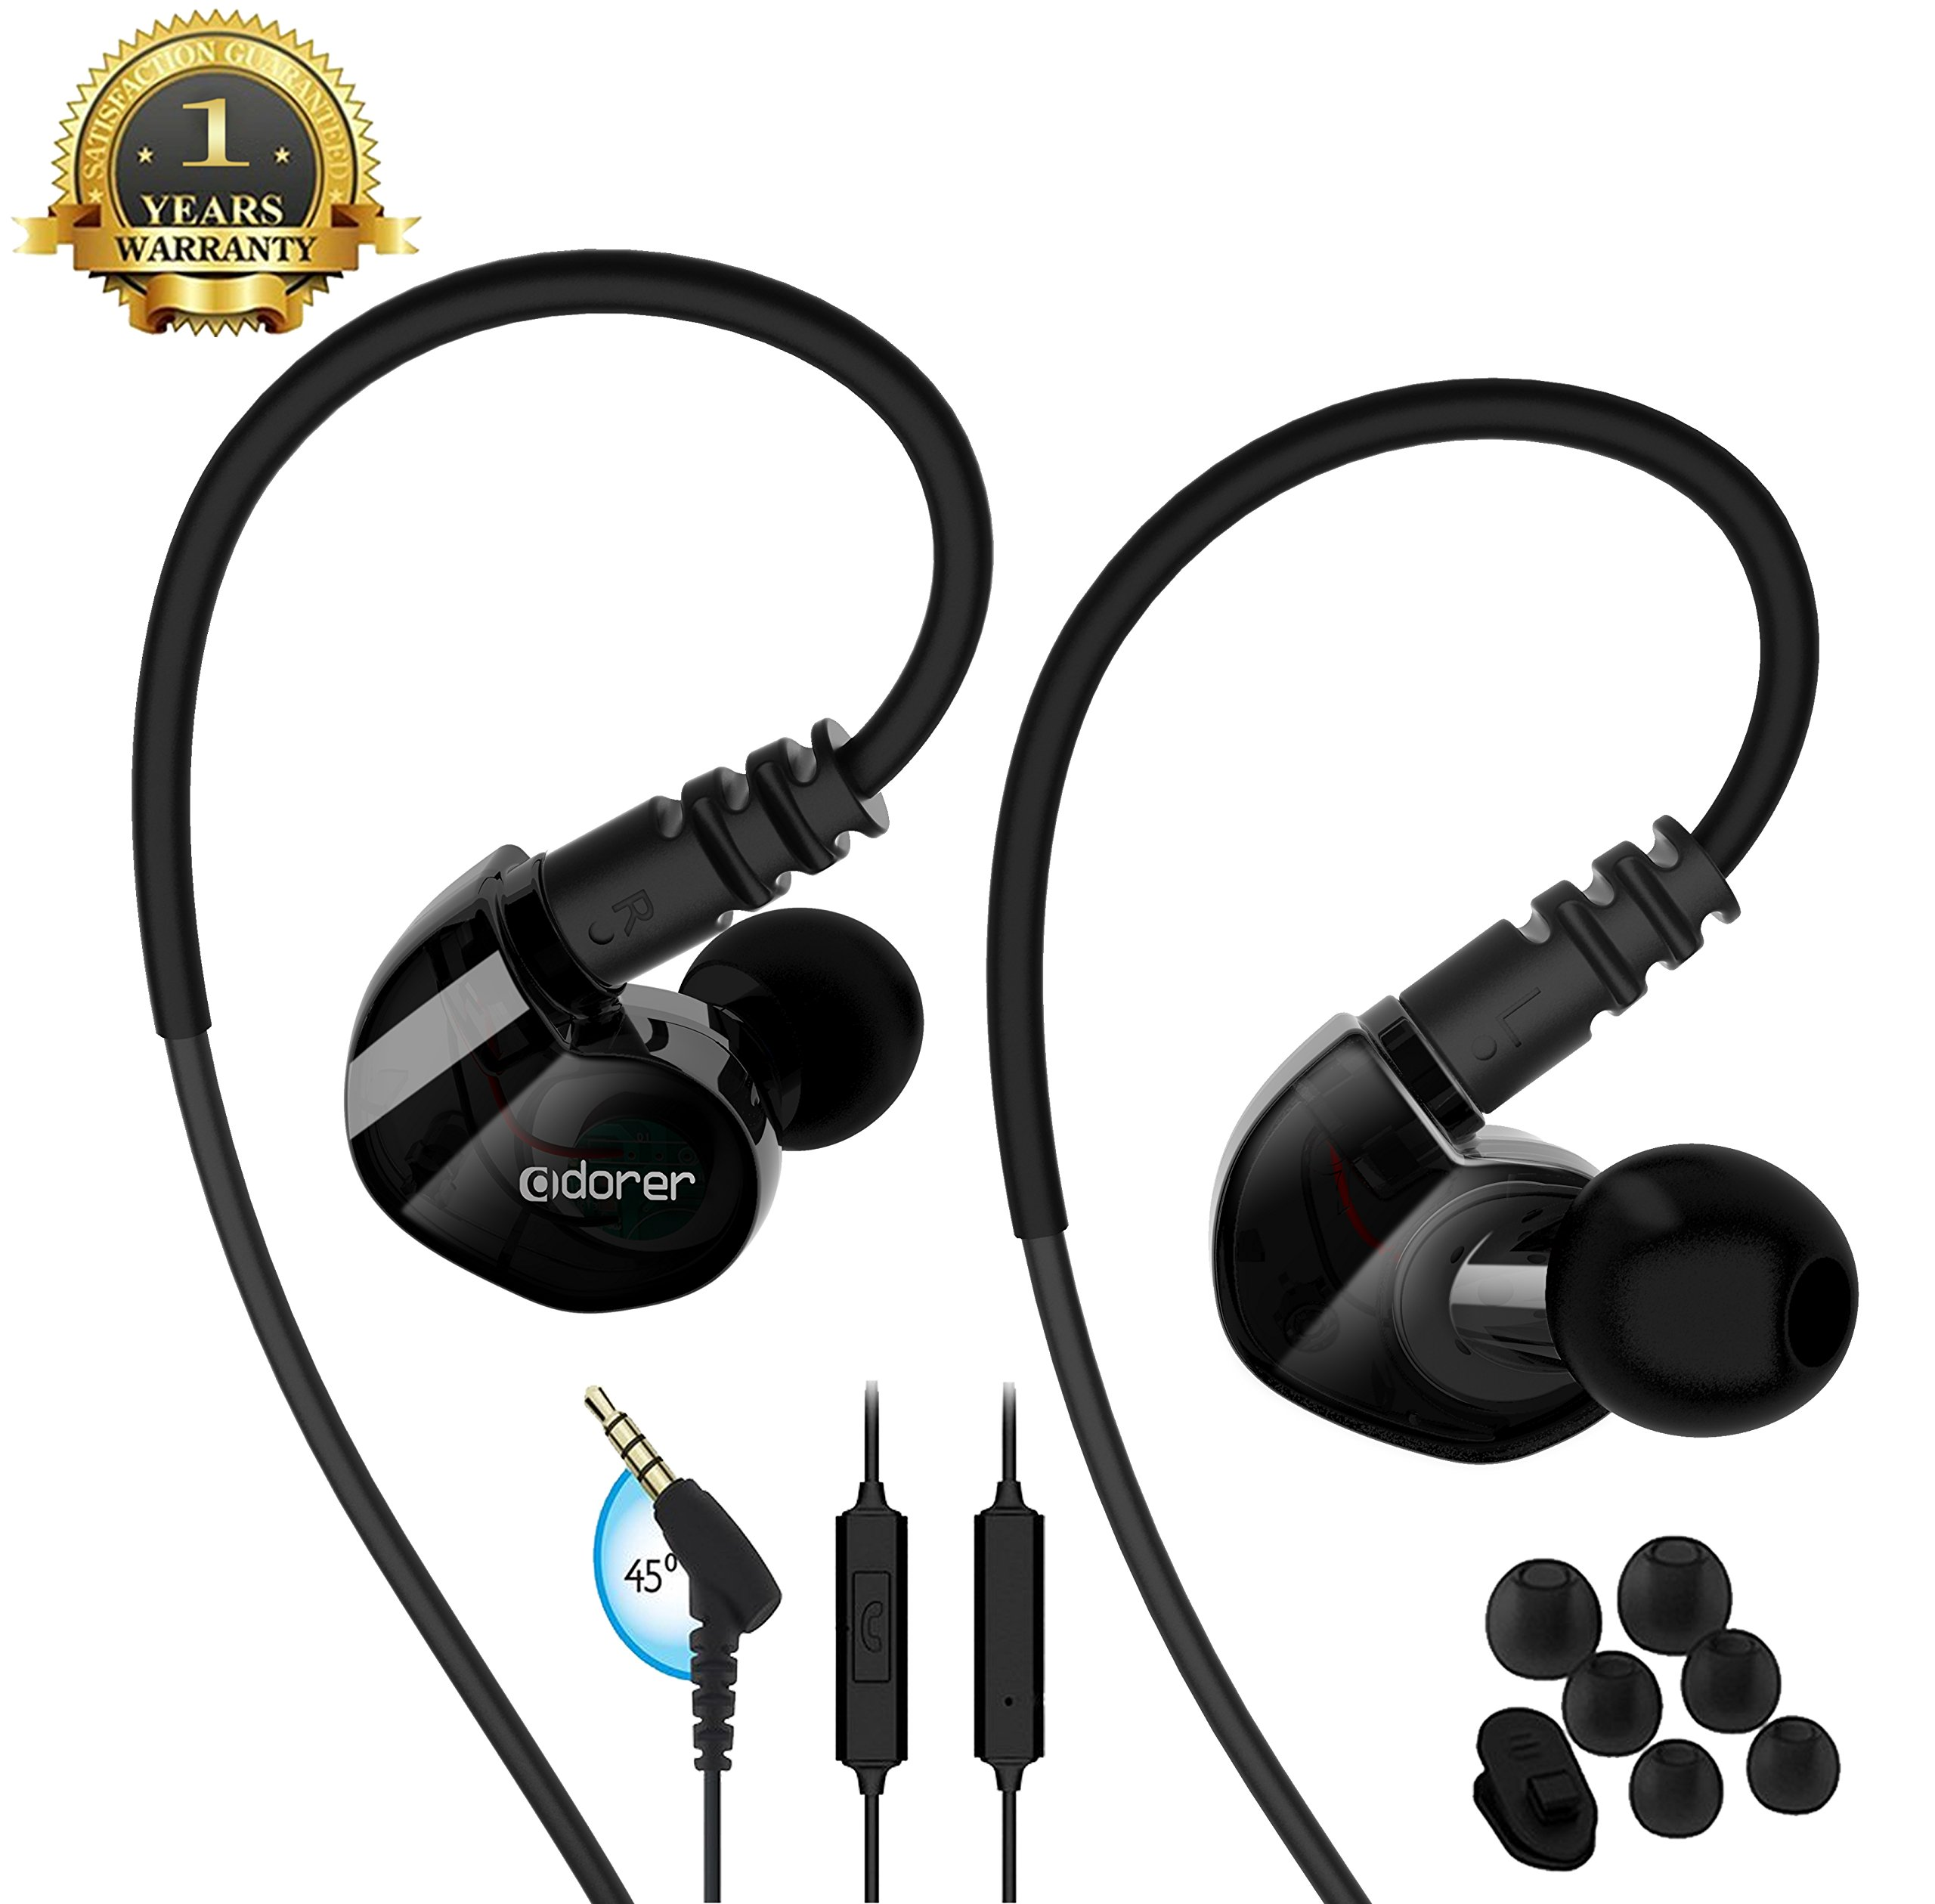 running Sports earbud Headphones Wired Over Ear In Ear Headsets Noise Isolation waterproof Earbuds Enhanced Bass Stereo Earphones with Microphone and Remote for Running Jogging Gym (Transparent black)